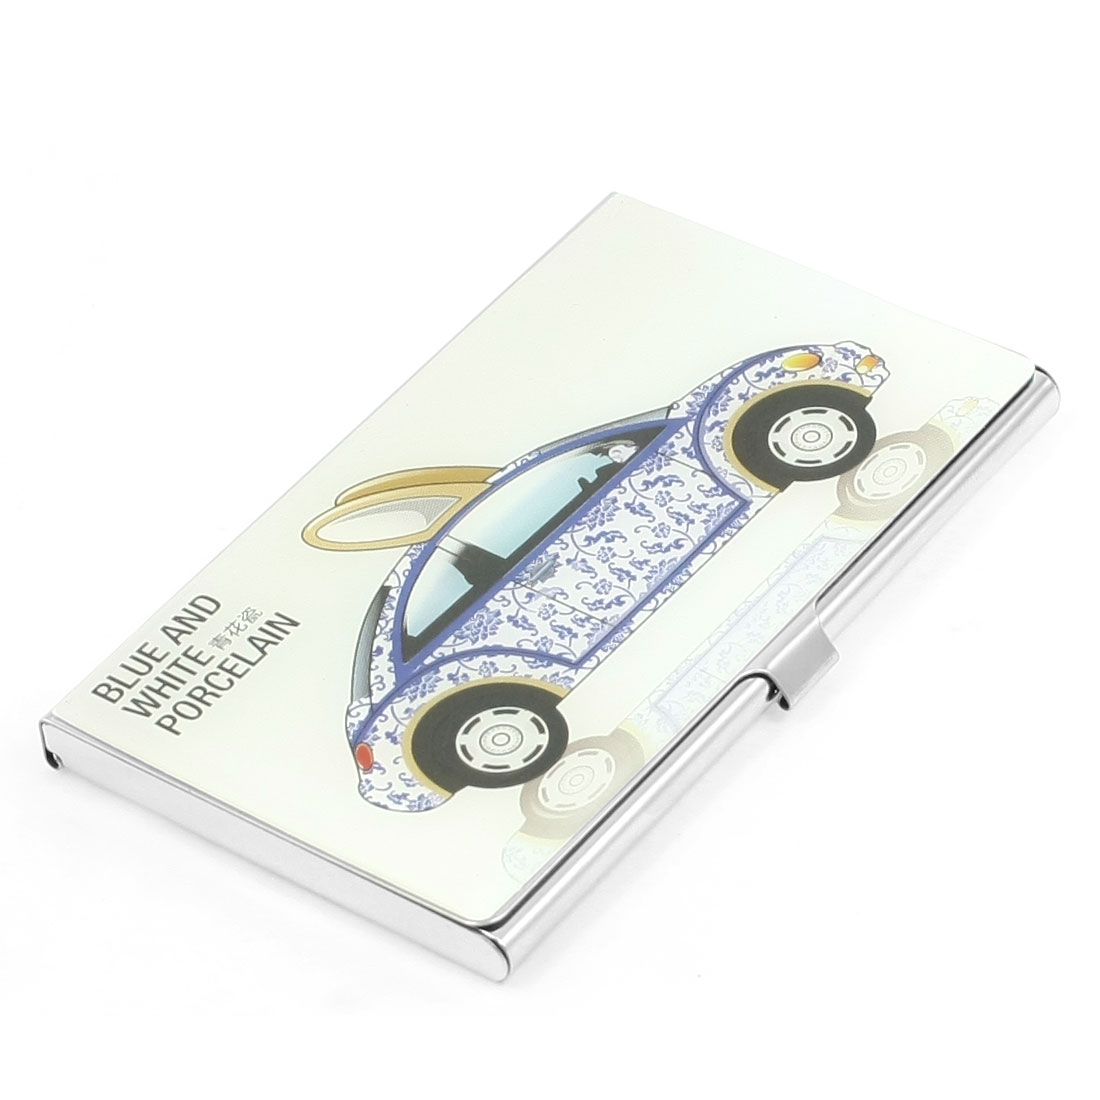 Chinese Blue and White Porcelain Car Print Mirrored Metal Rectangular Business Card Holder